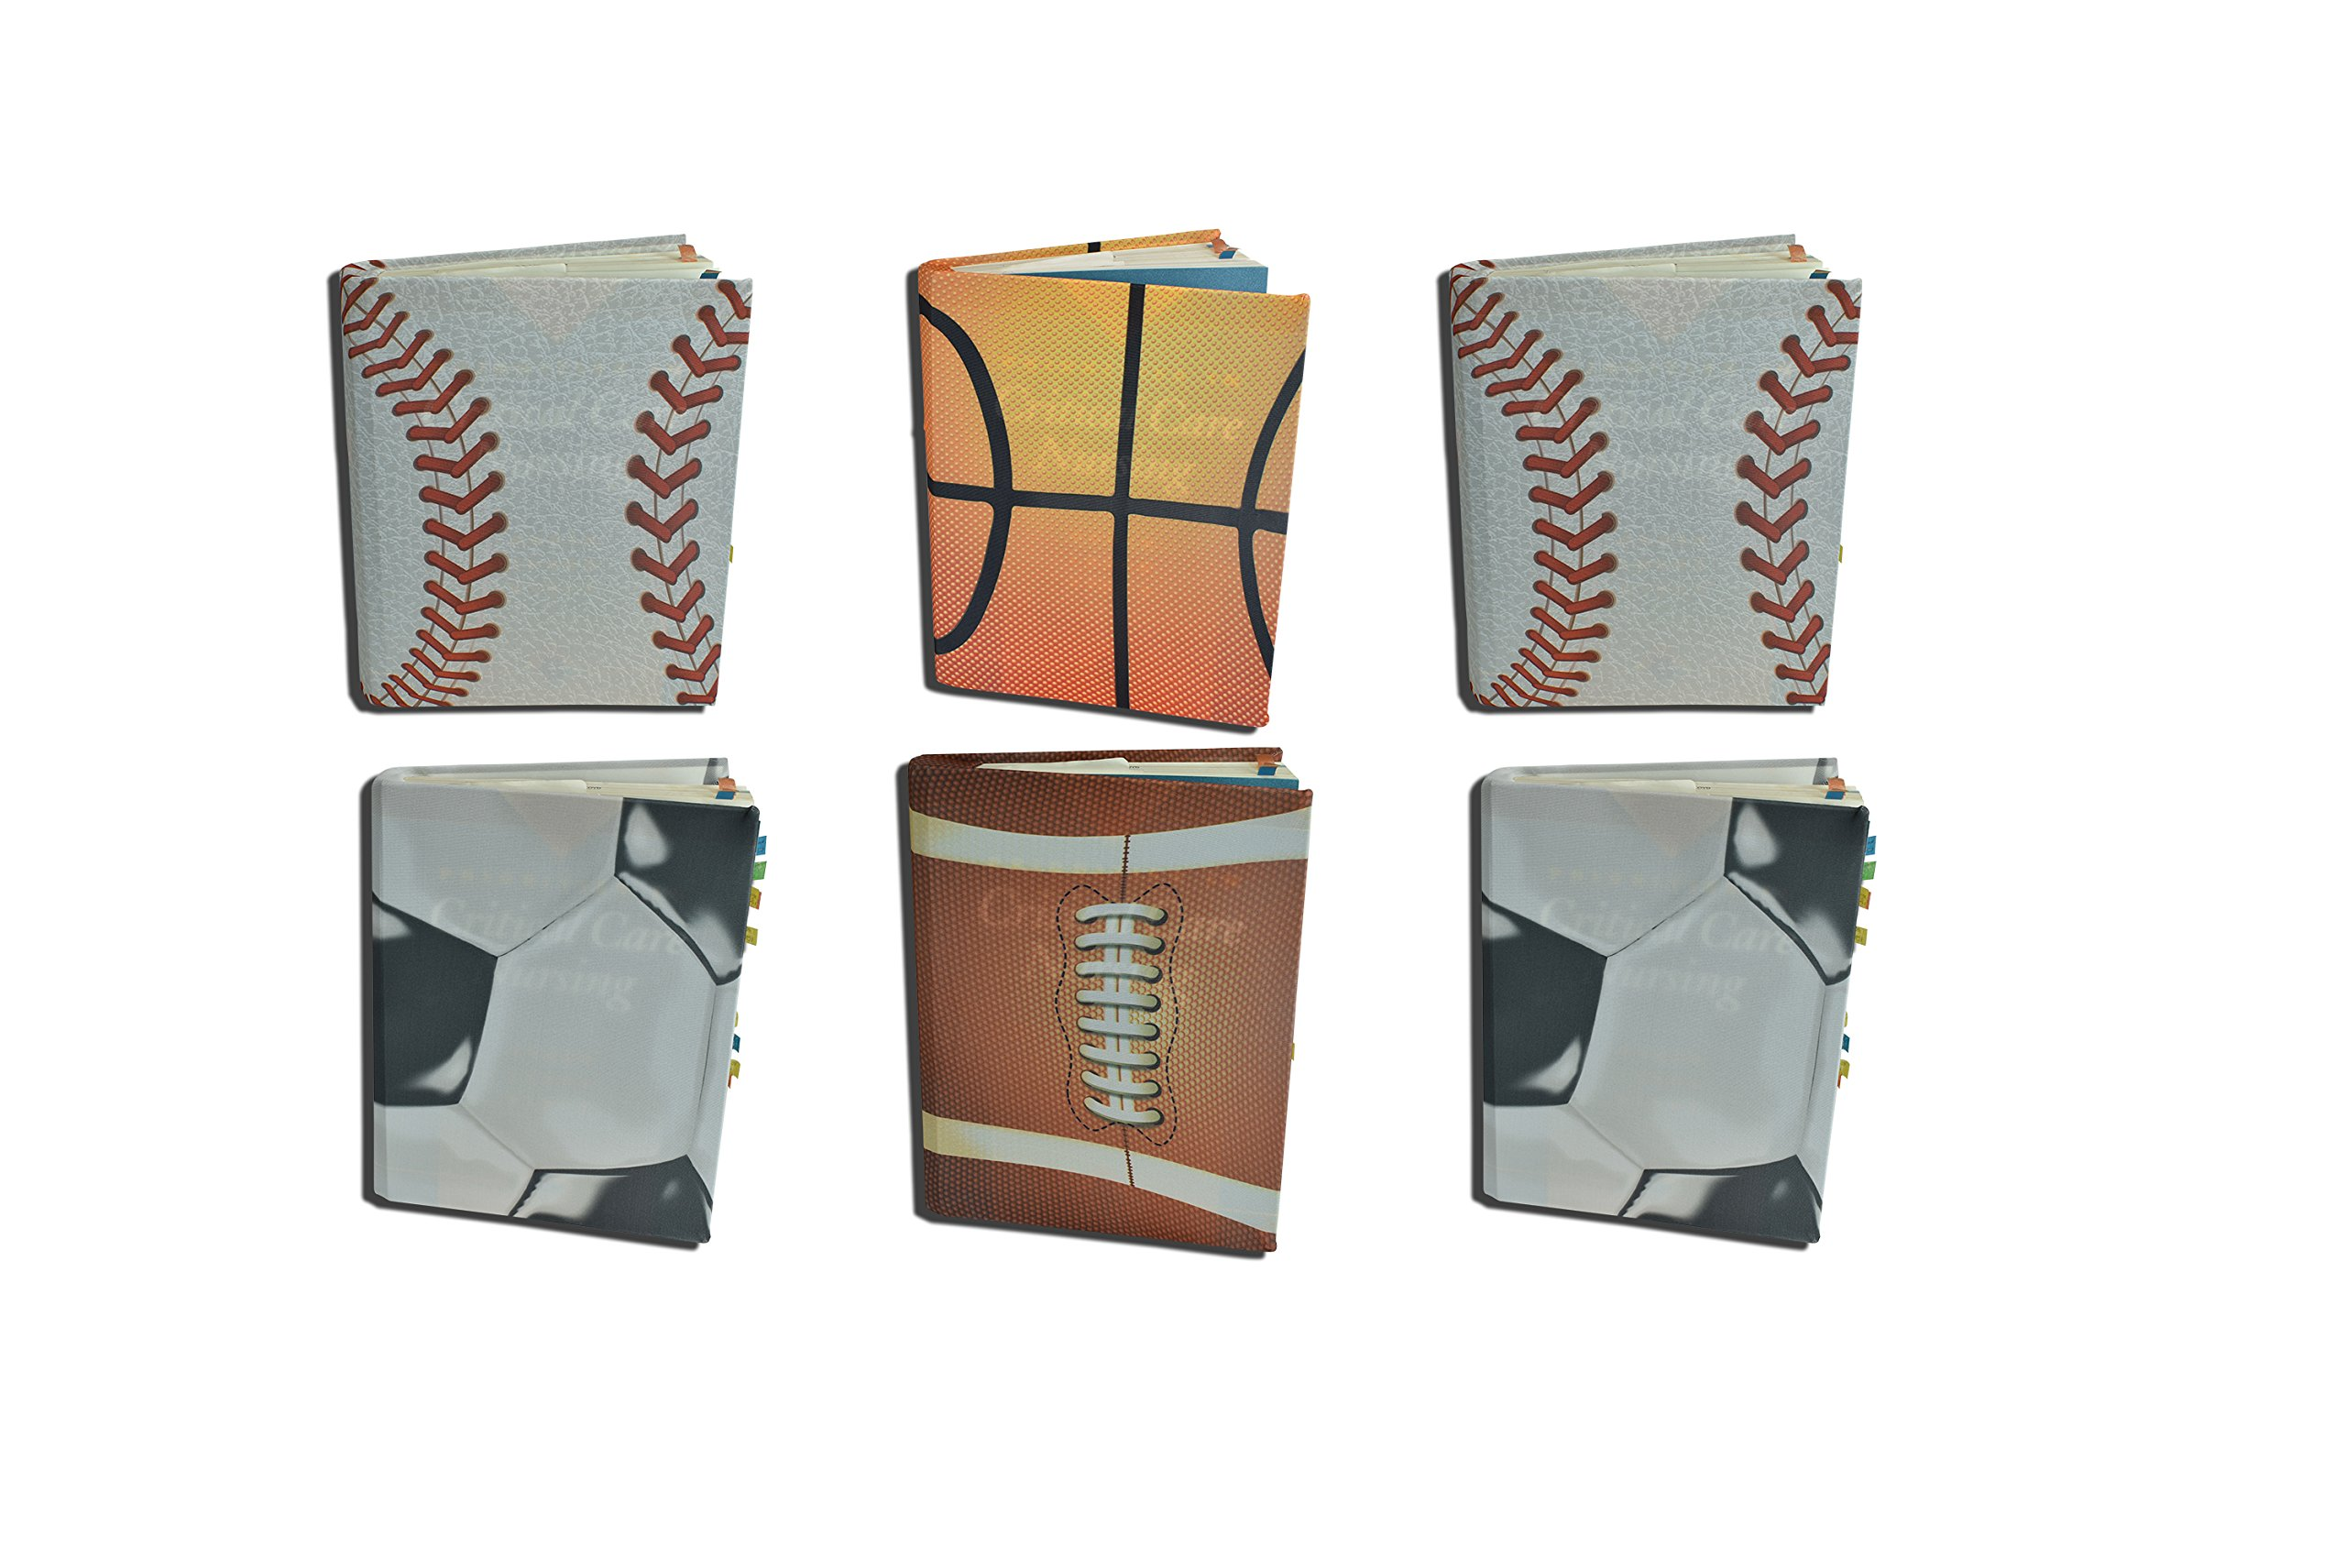 Sports Themed Stretchy Protective Textbook Covers 6 Pack of Stretchable Cloth Baseball, Basketball, Football and Soccer (Sports Vary) (Jumbo Only Sports Variety 6 Pack)